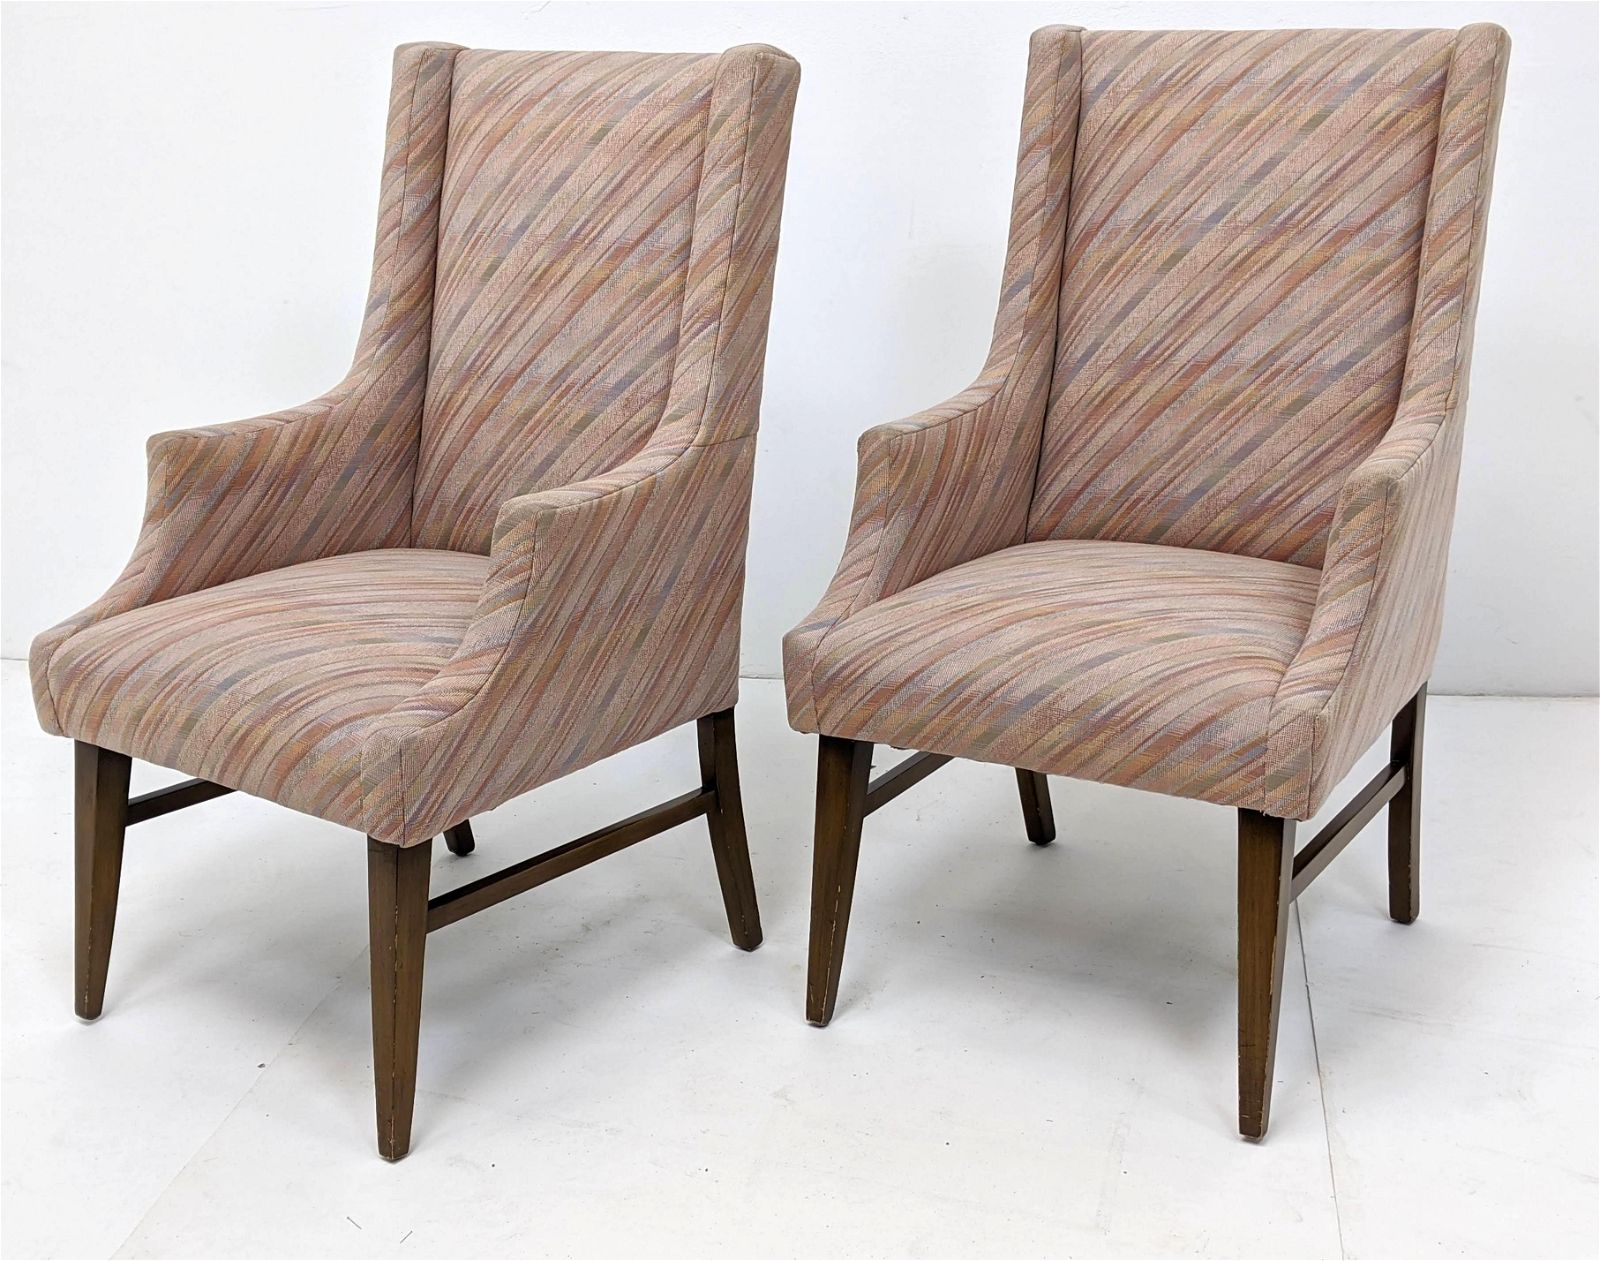 Pr TOMMI PARZINGER for Charak Upholstered Arm Chairs. P